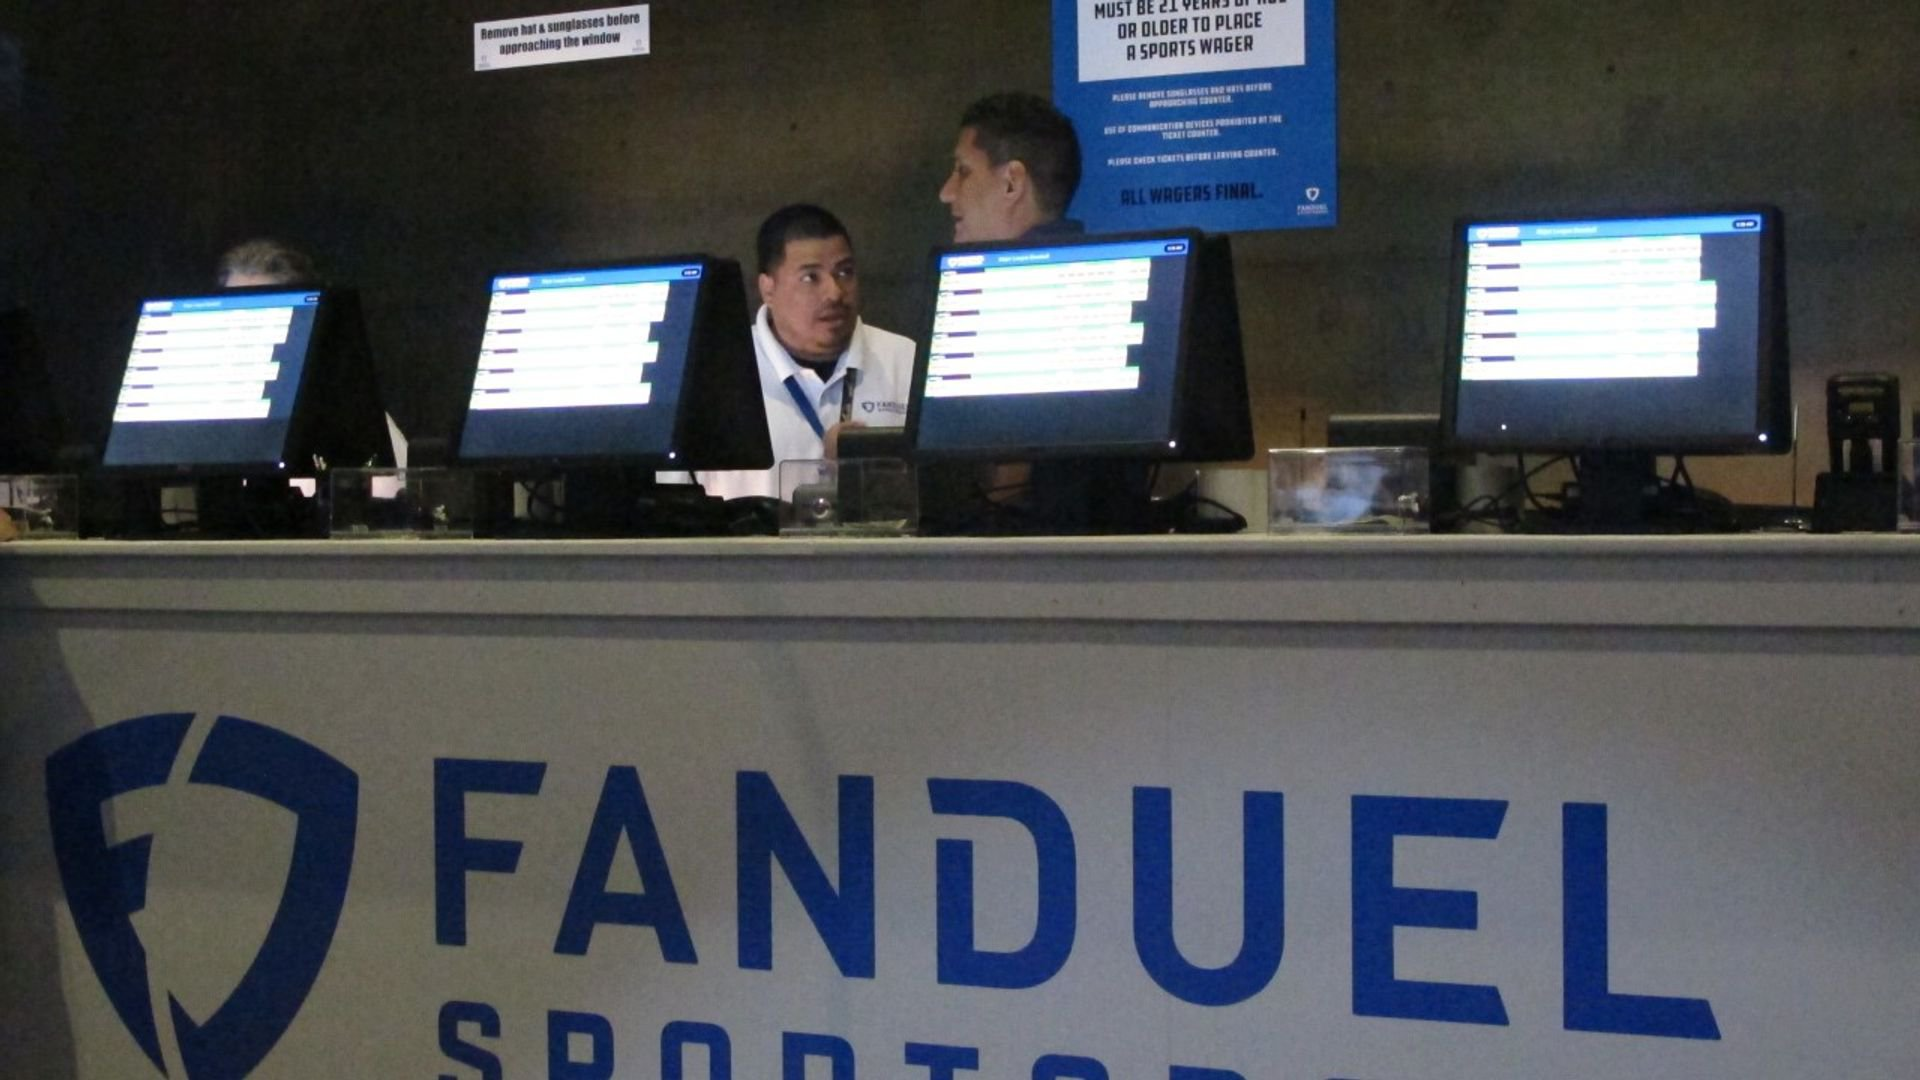 The winner — and current champion — is FanDuel